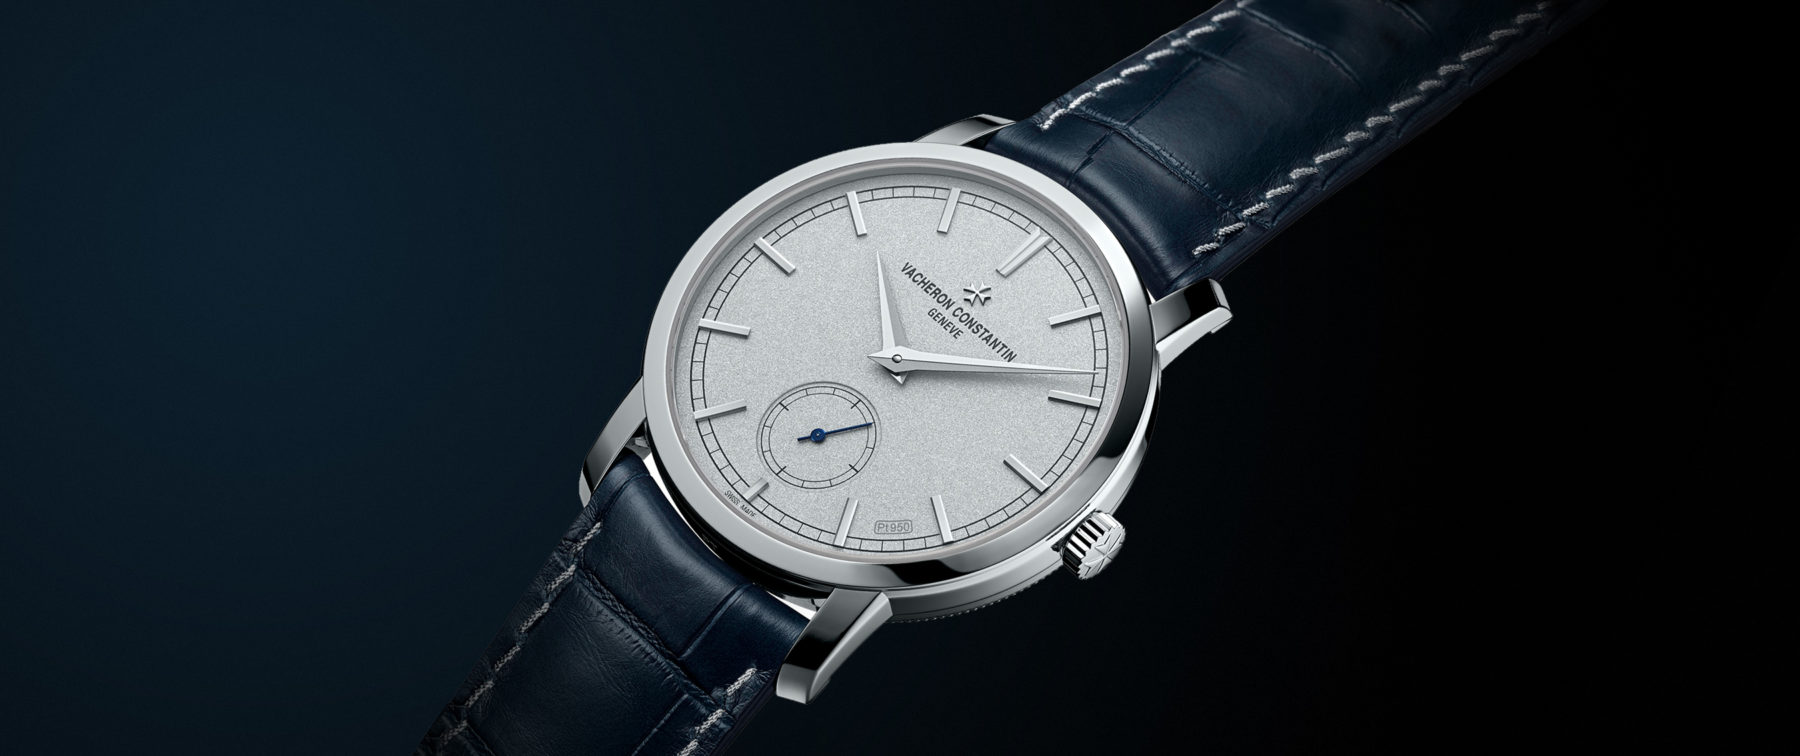 The Vacheron Constantin Traditionelle Platine is a shining example of heritage watchmaking